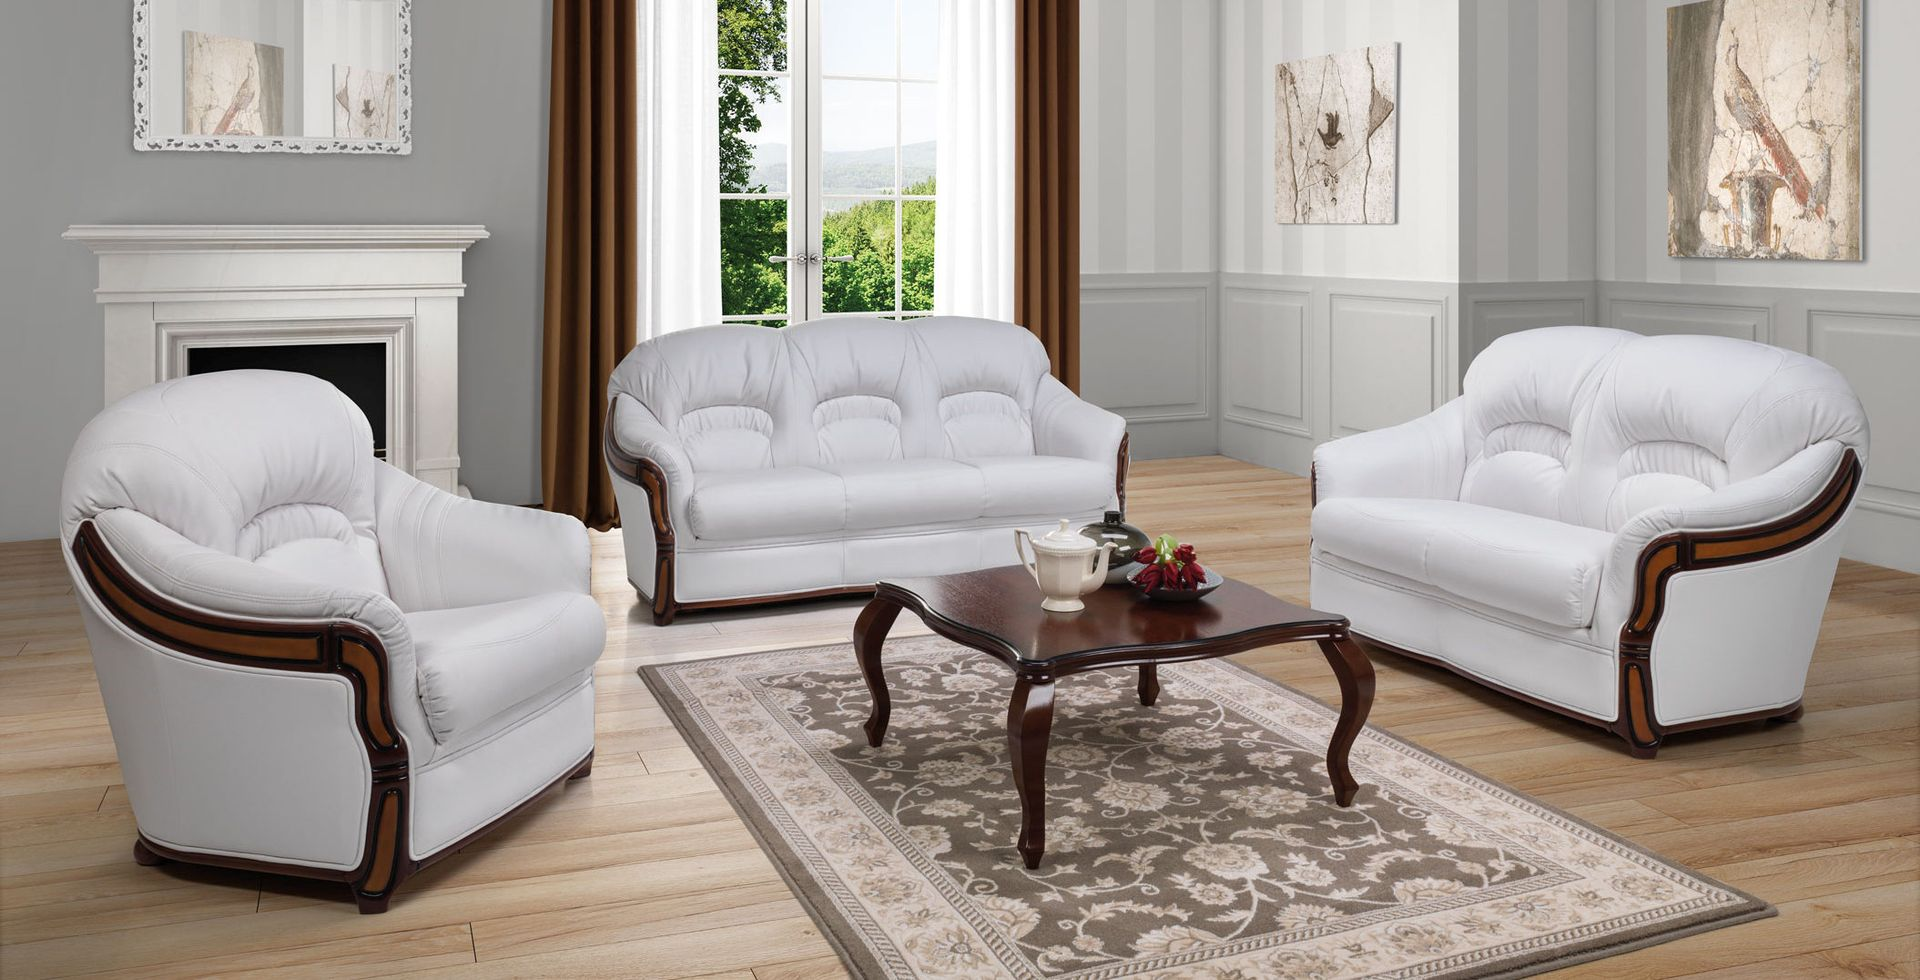 Sofagarnitur 3 2 1 Chesterfield Sofa Set Sofa Couch 3 2 1 Chairs Bed Function Sofa Ebay